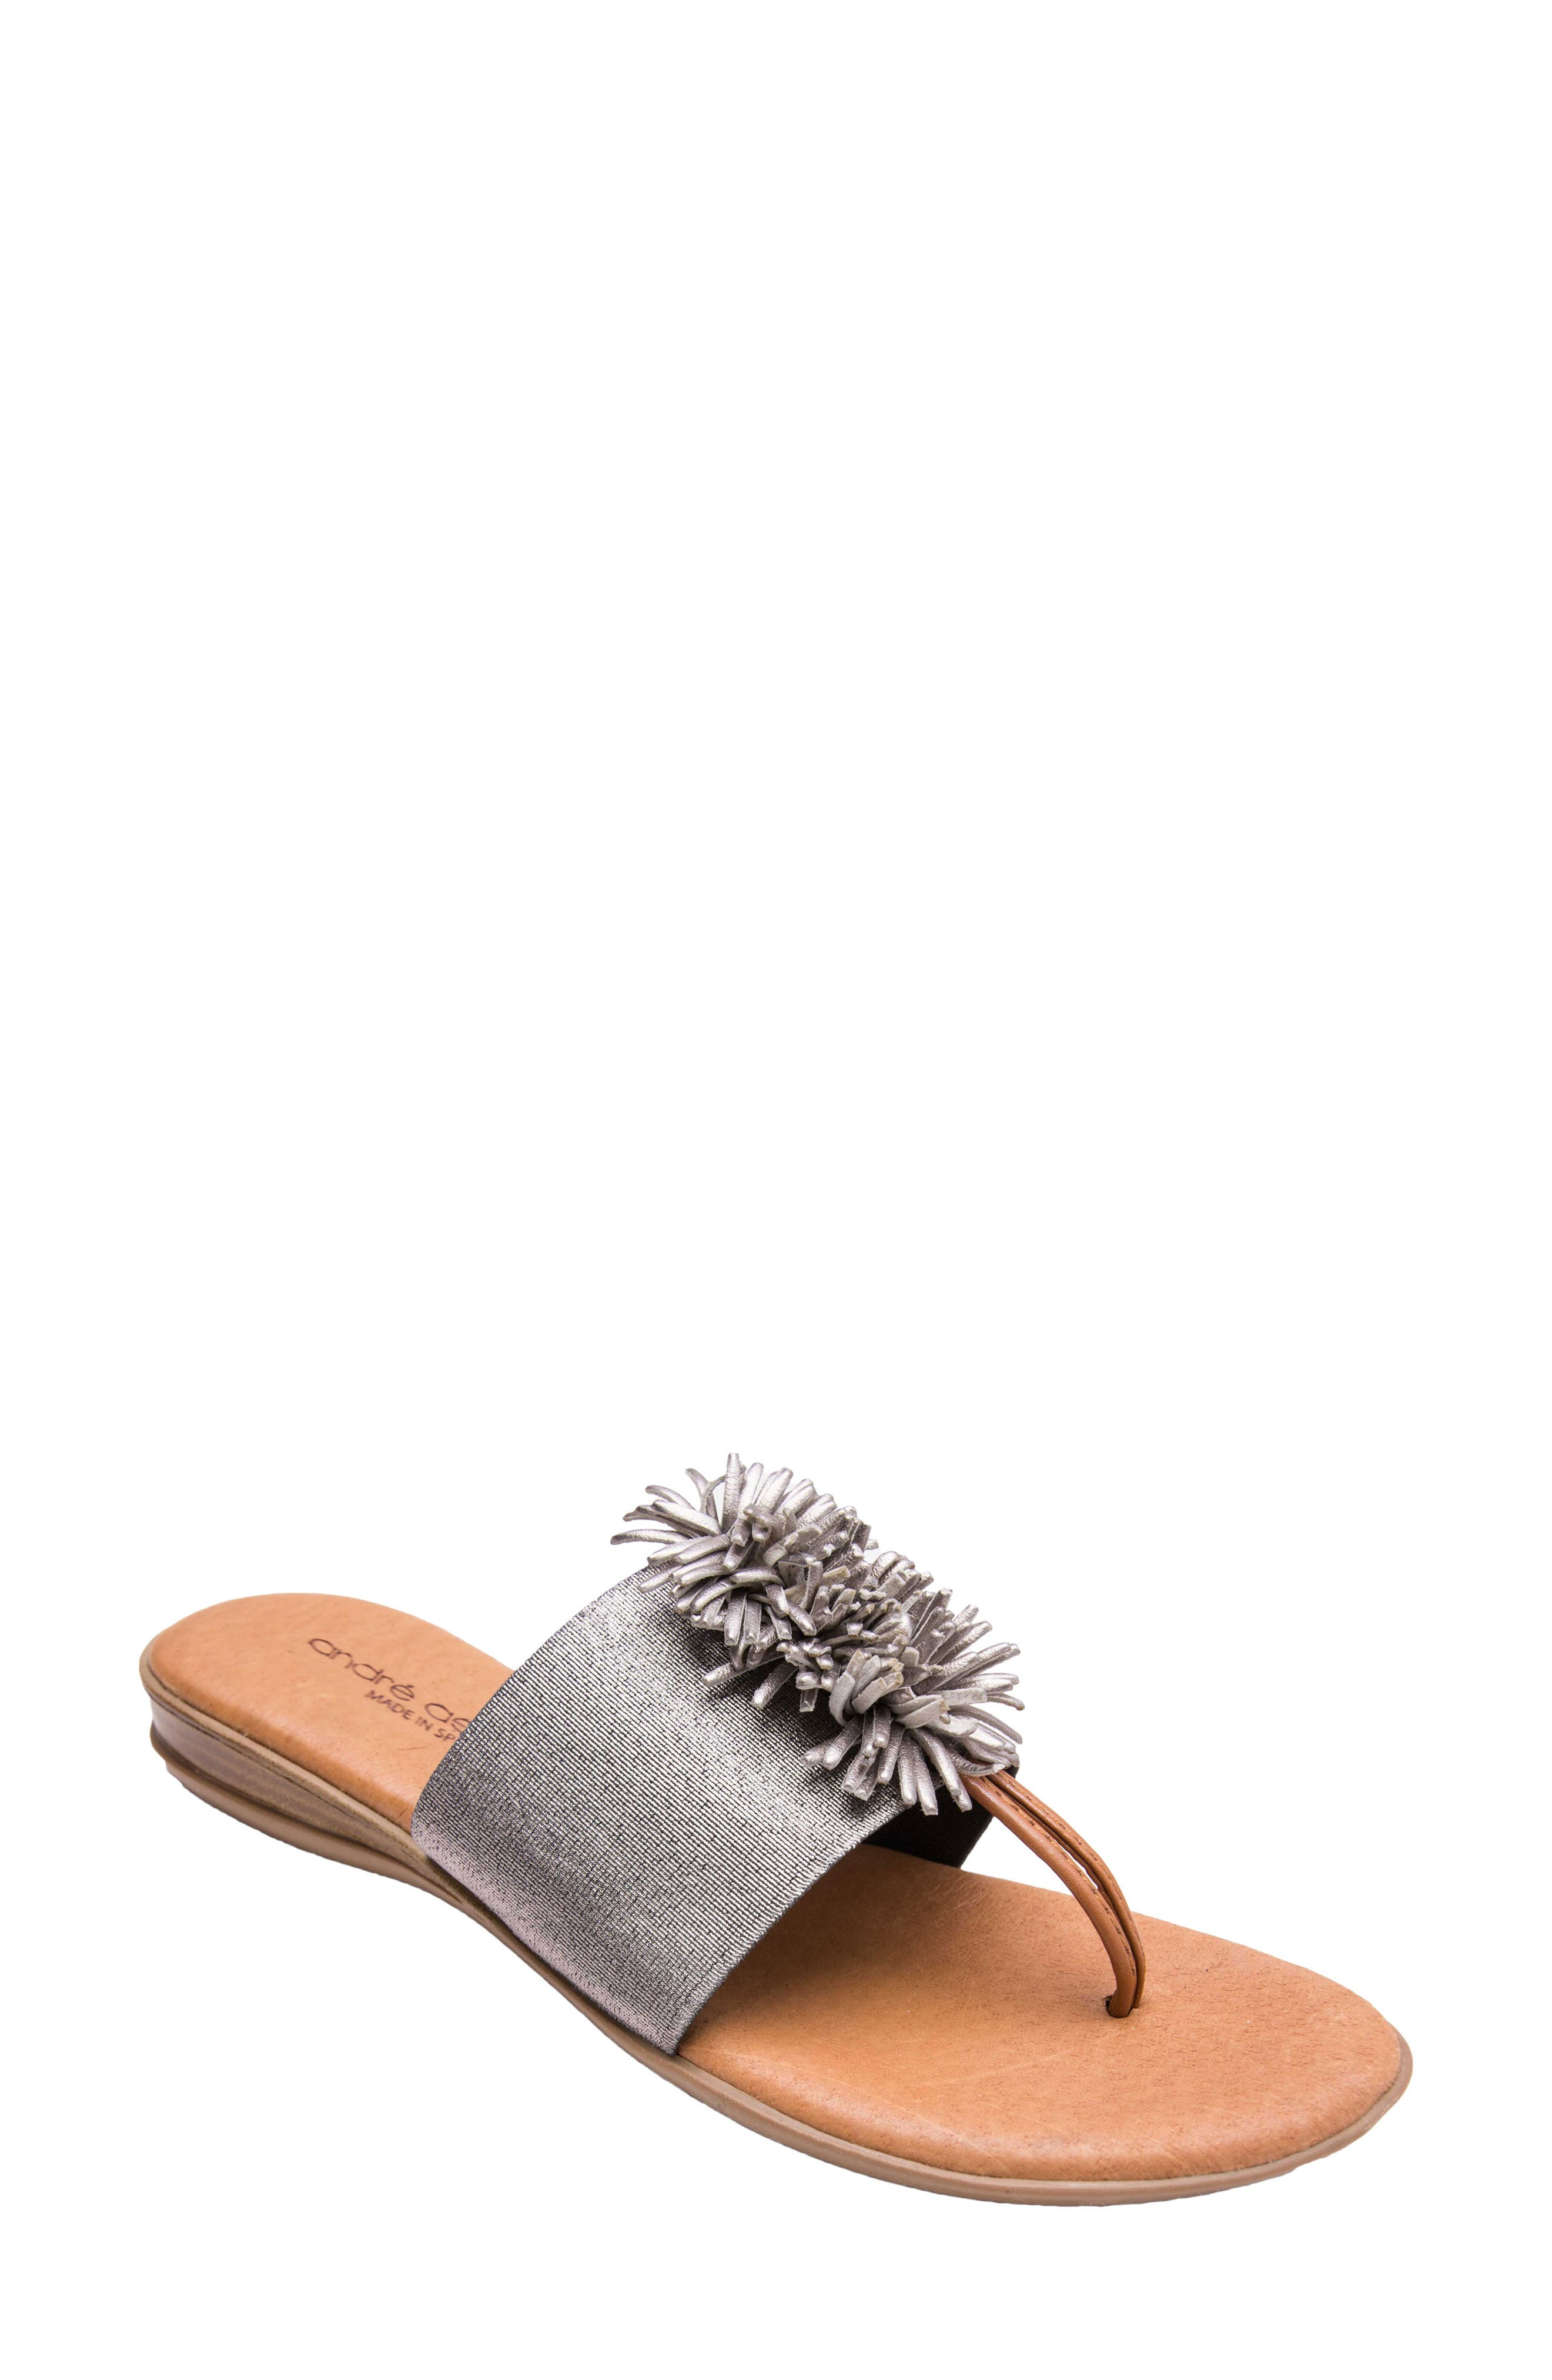 ANDRE ASSOUS Women'S Novalee Leather Fringe Demi Wedge Sandals in Pewter Fabric